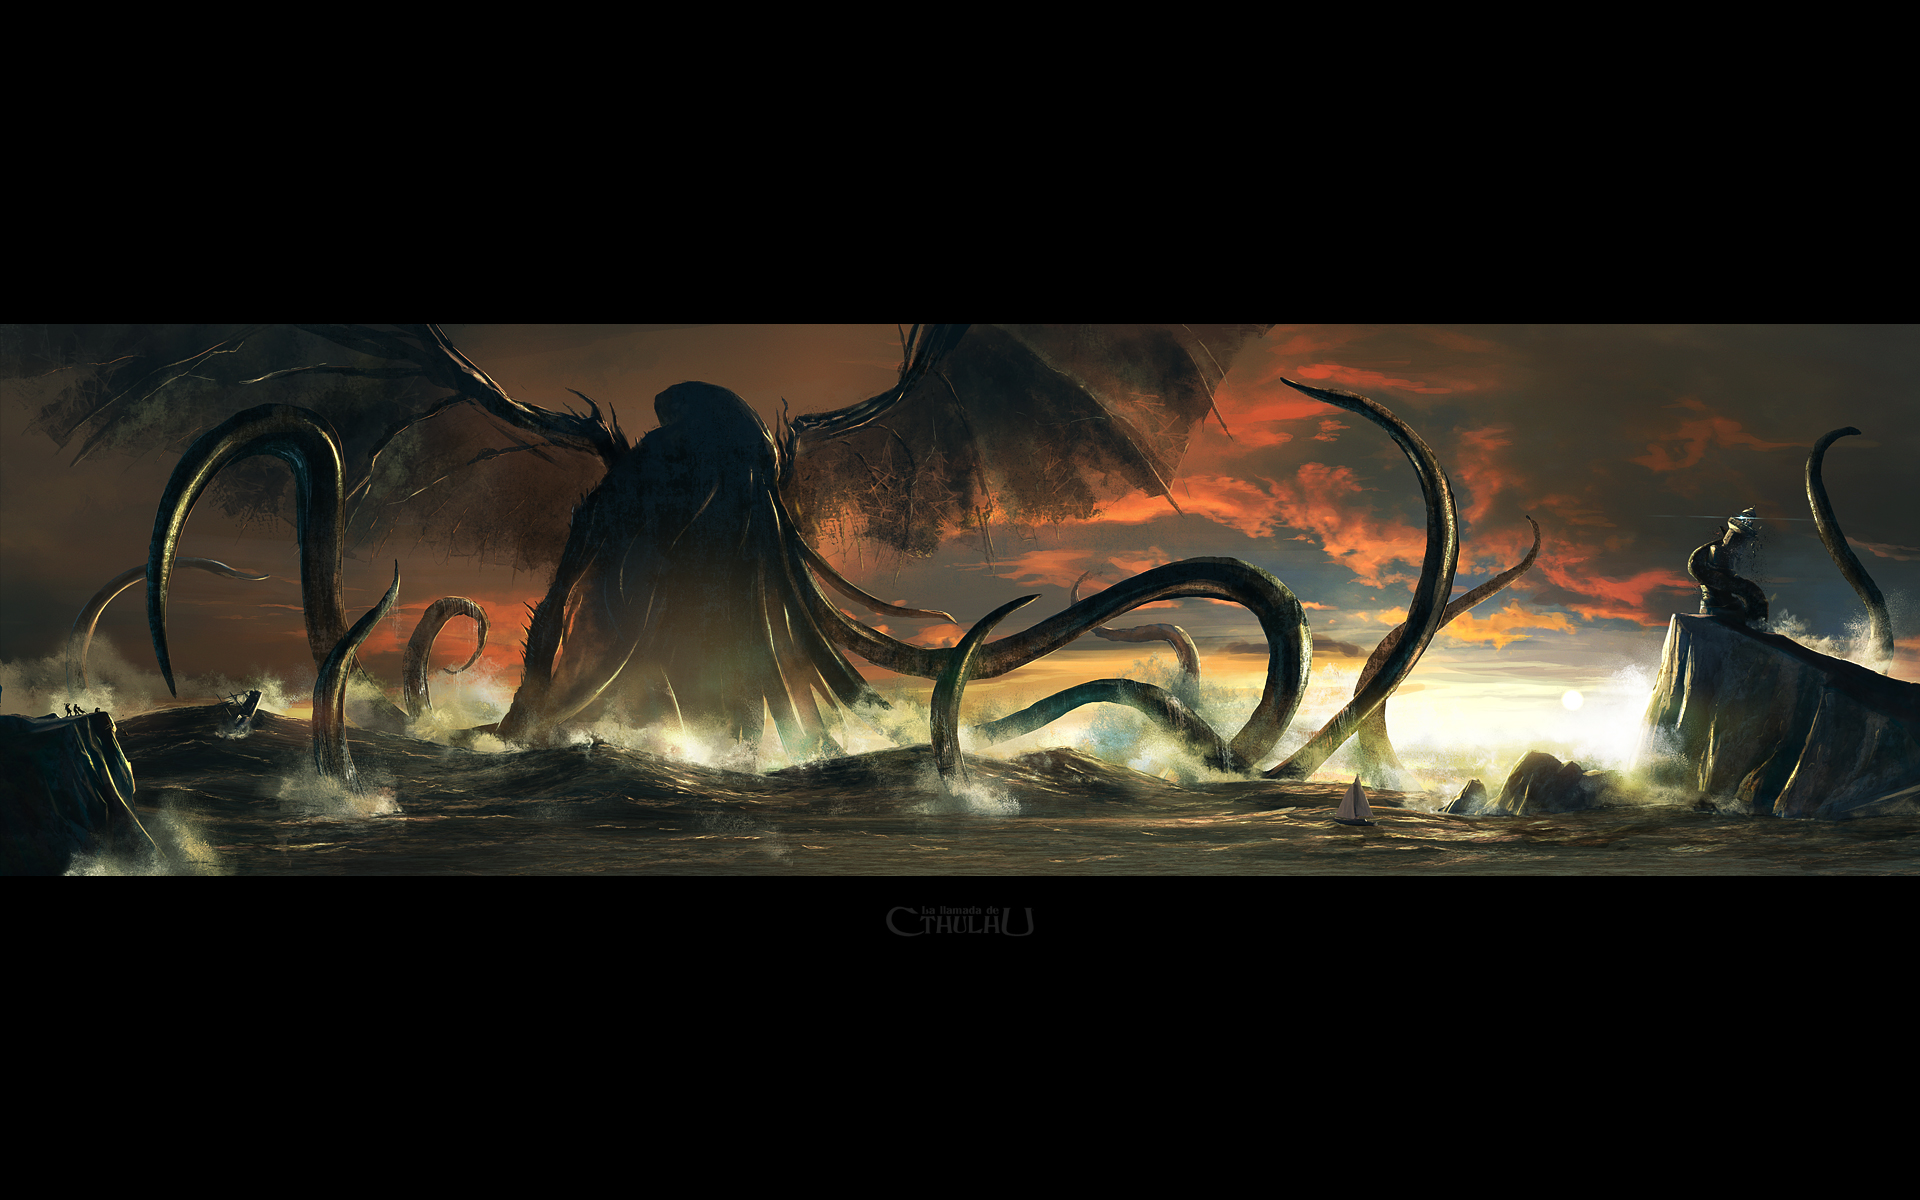 cthulhu monster wings wallpaper 1920x1200 64358